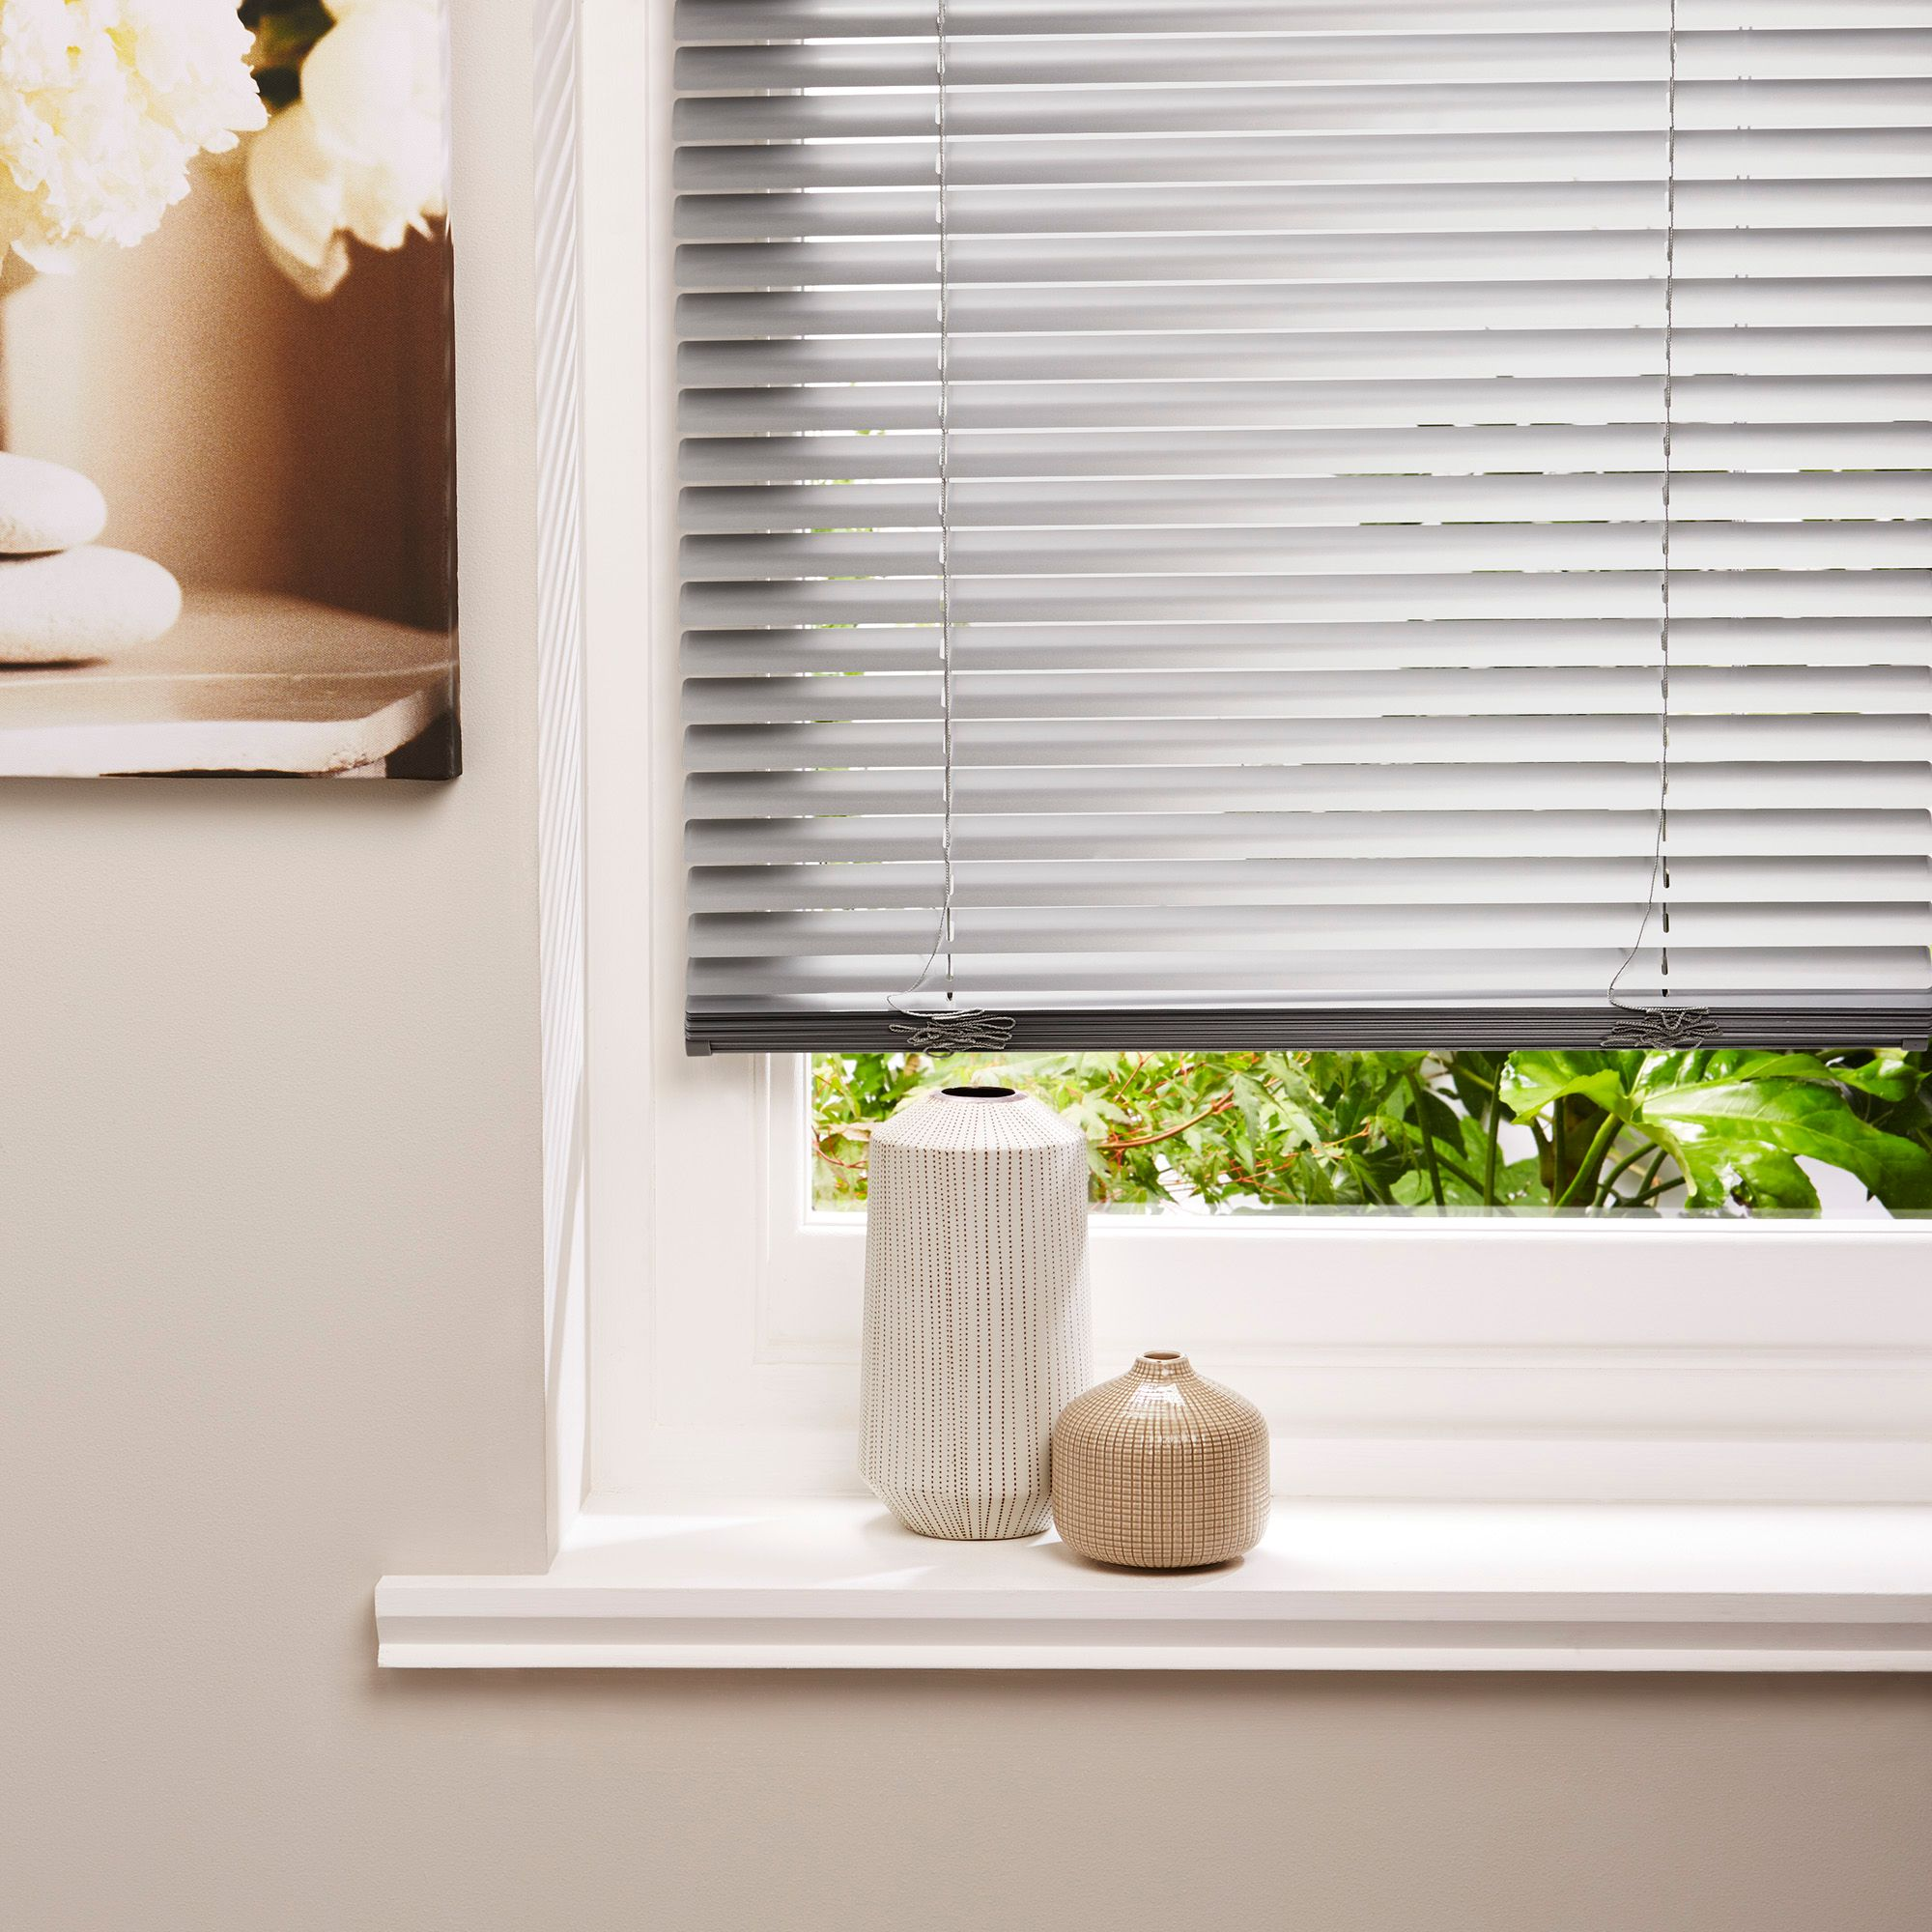 curtain blinds venetian blinds PYVHXOH